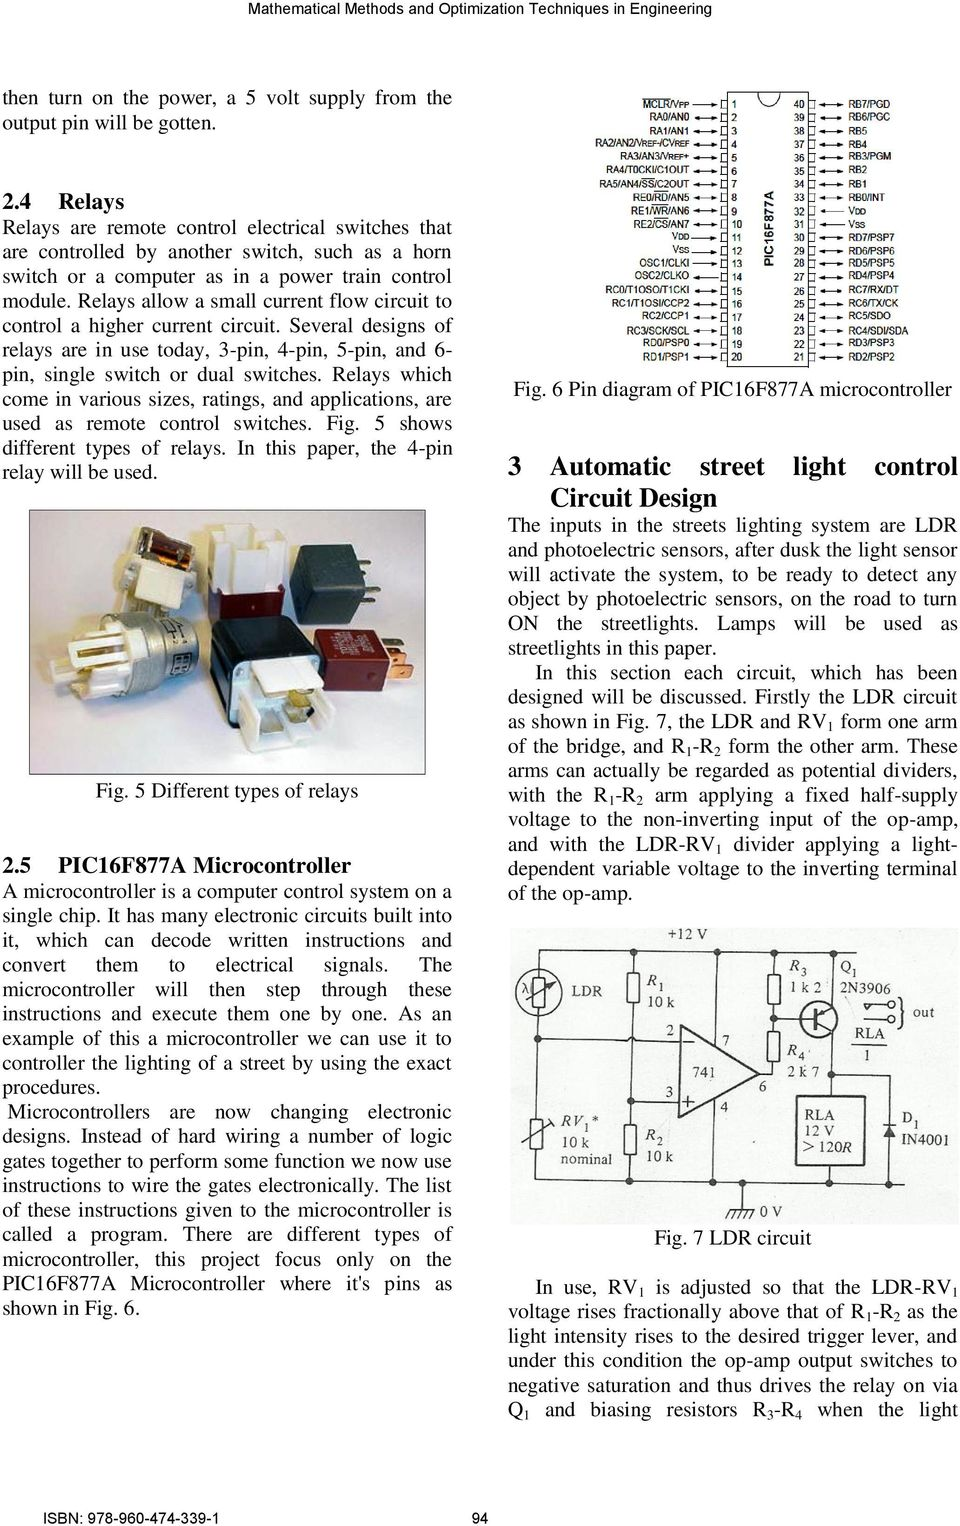 Automatic Street Light Control System Using Microcontroller Pdf Switch And Sensor Ldr Circuit Also Simple Relay Diagram Relays Allow A Small Current Flow To Higher Several Designs